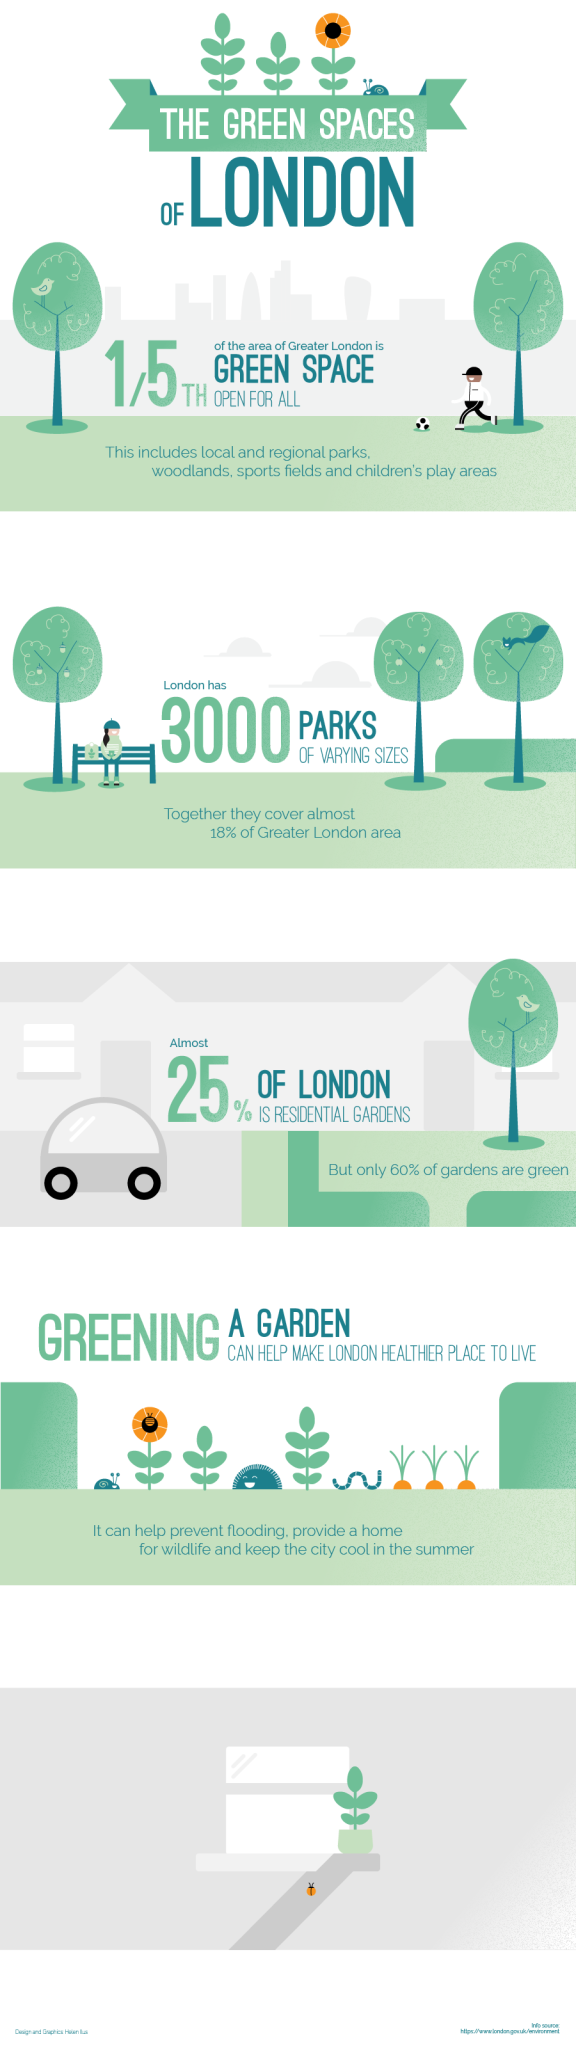 The Green Spaces of London